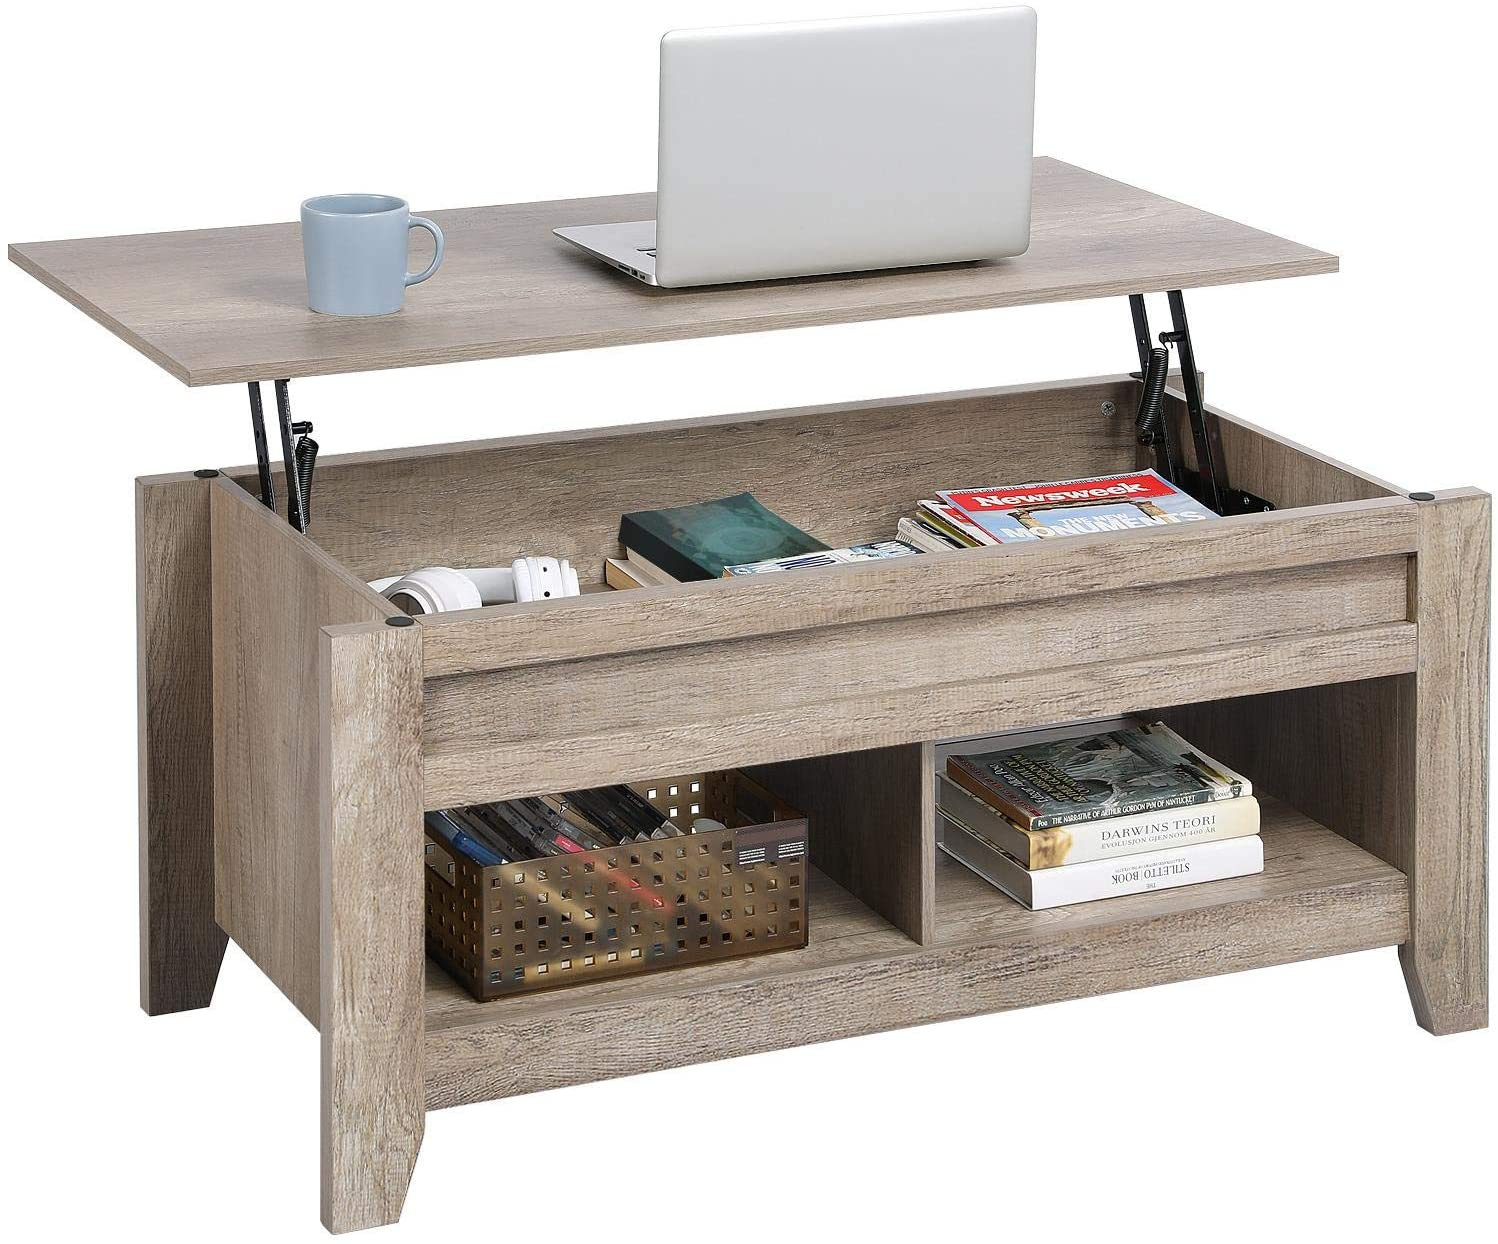 YAHEETECH Lift Top Coffee Table with Hidden Storage Compartment